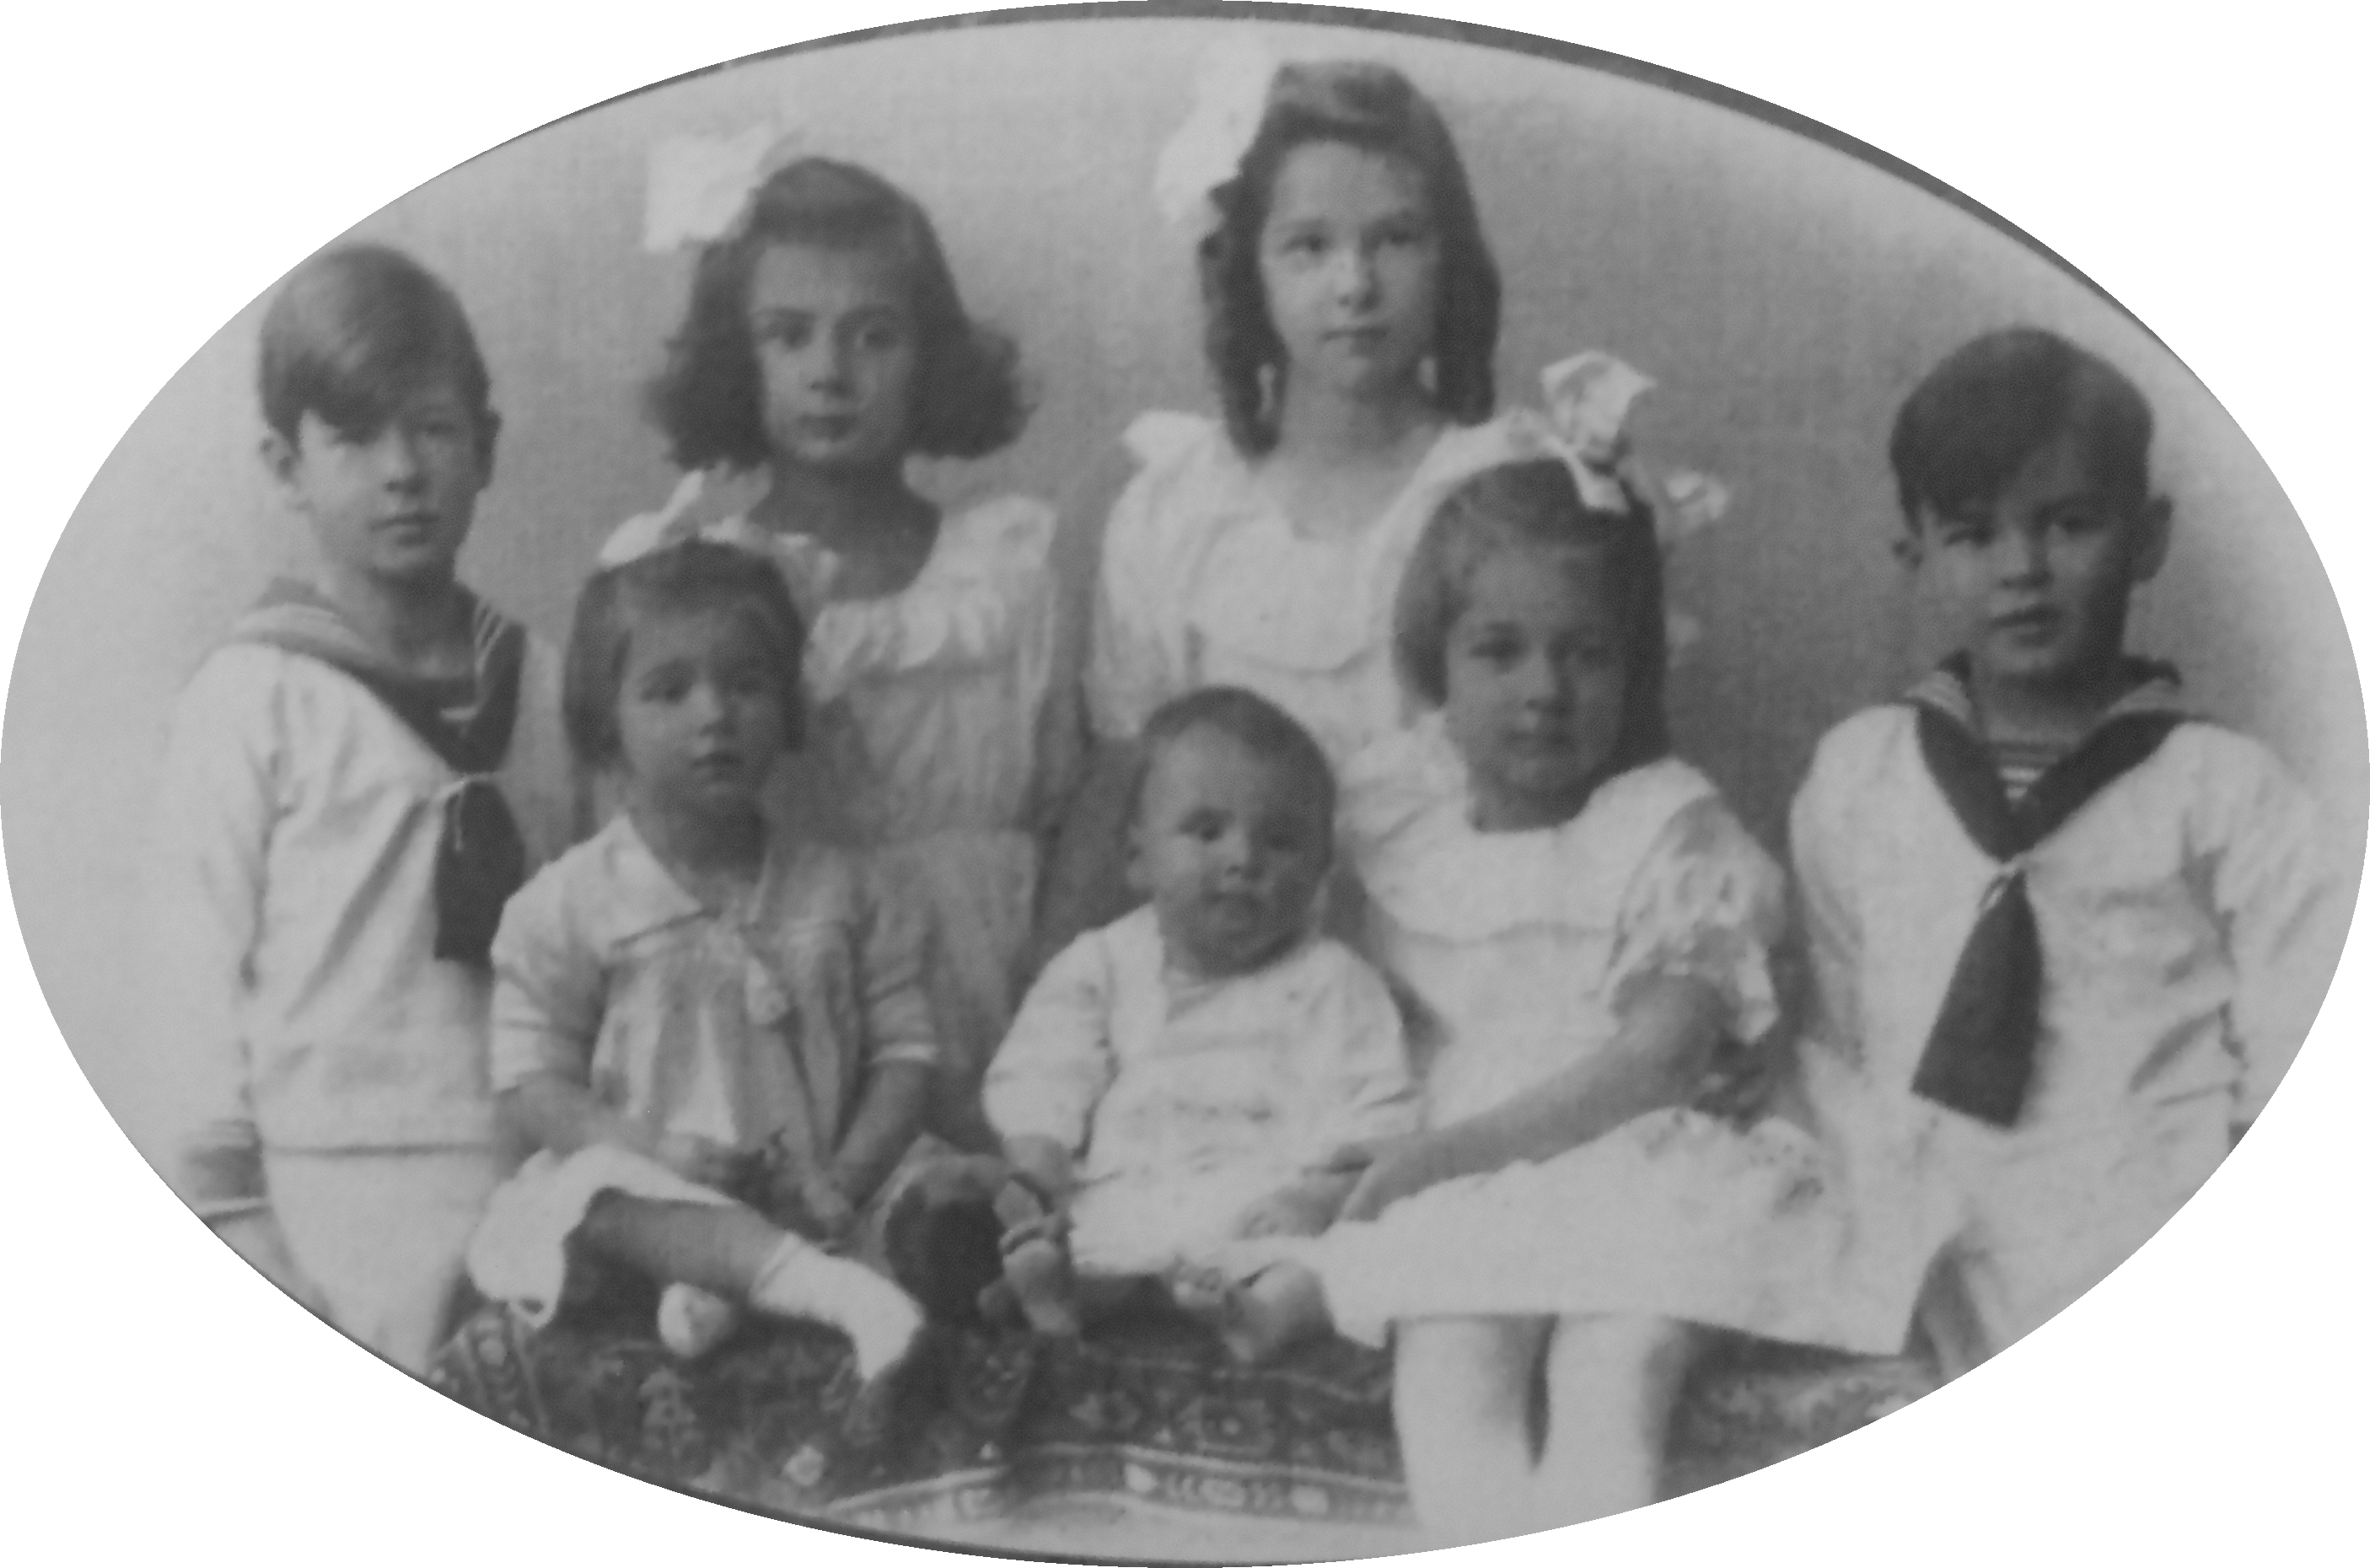 real von Trapp children picture